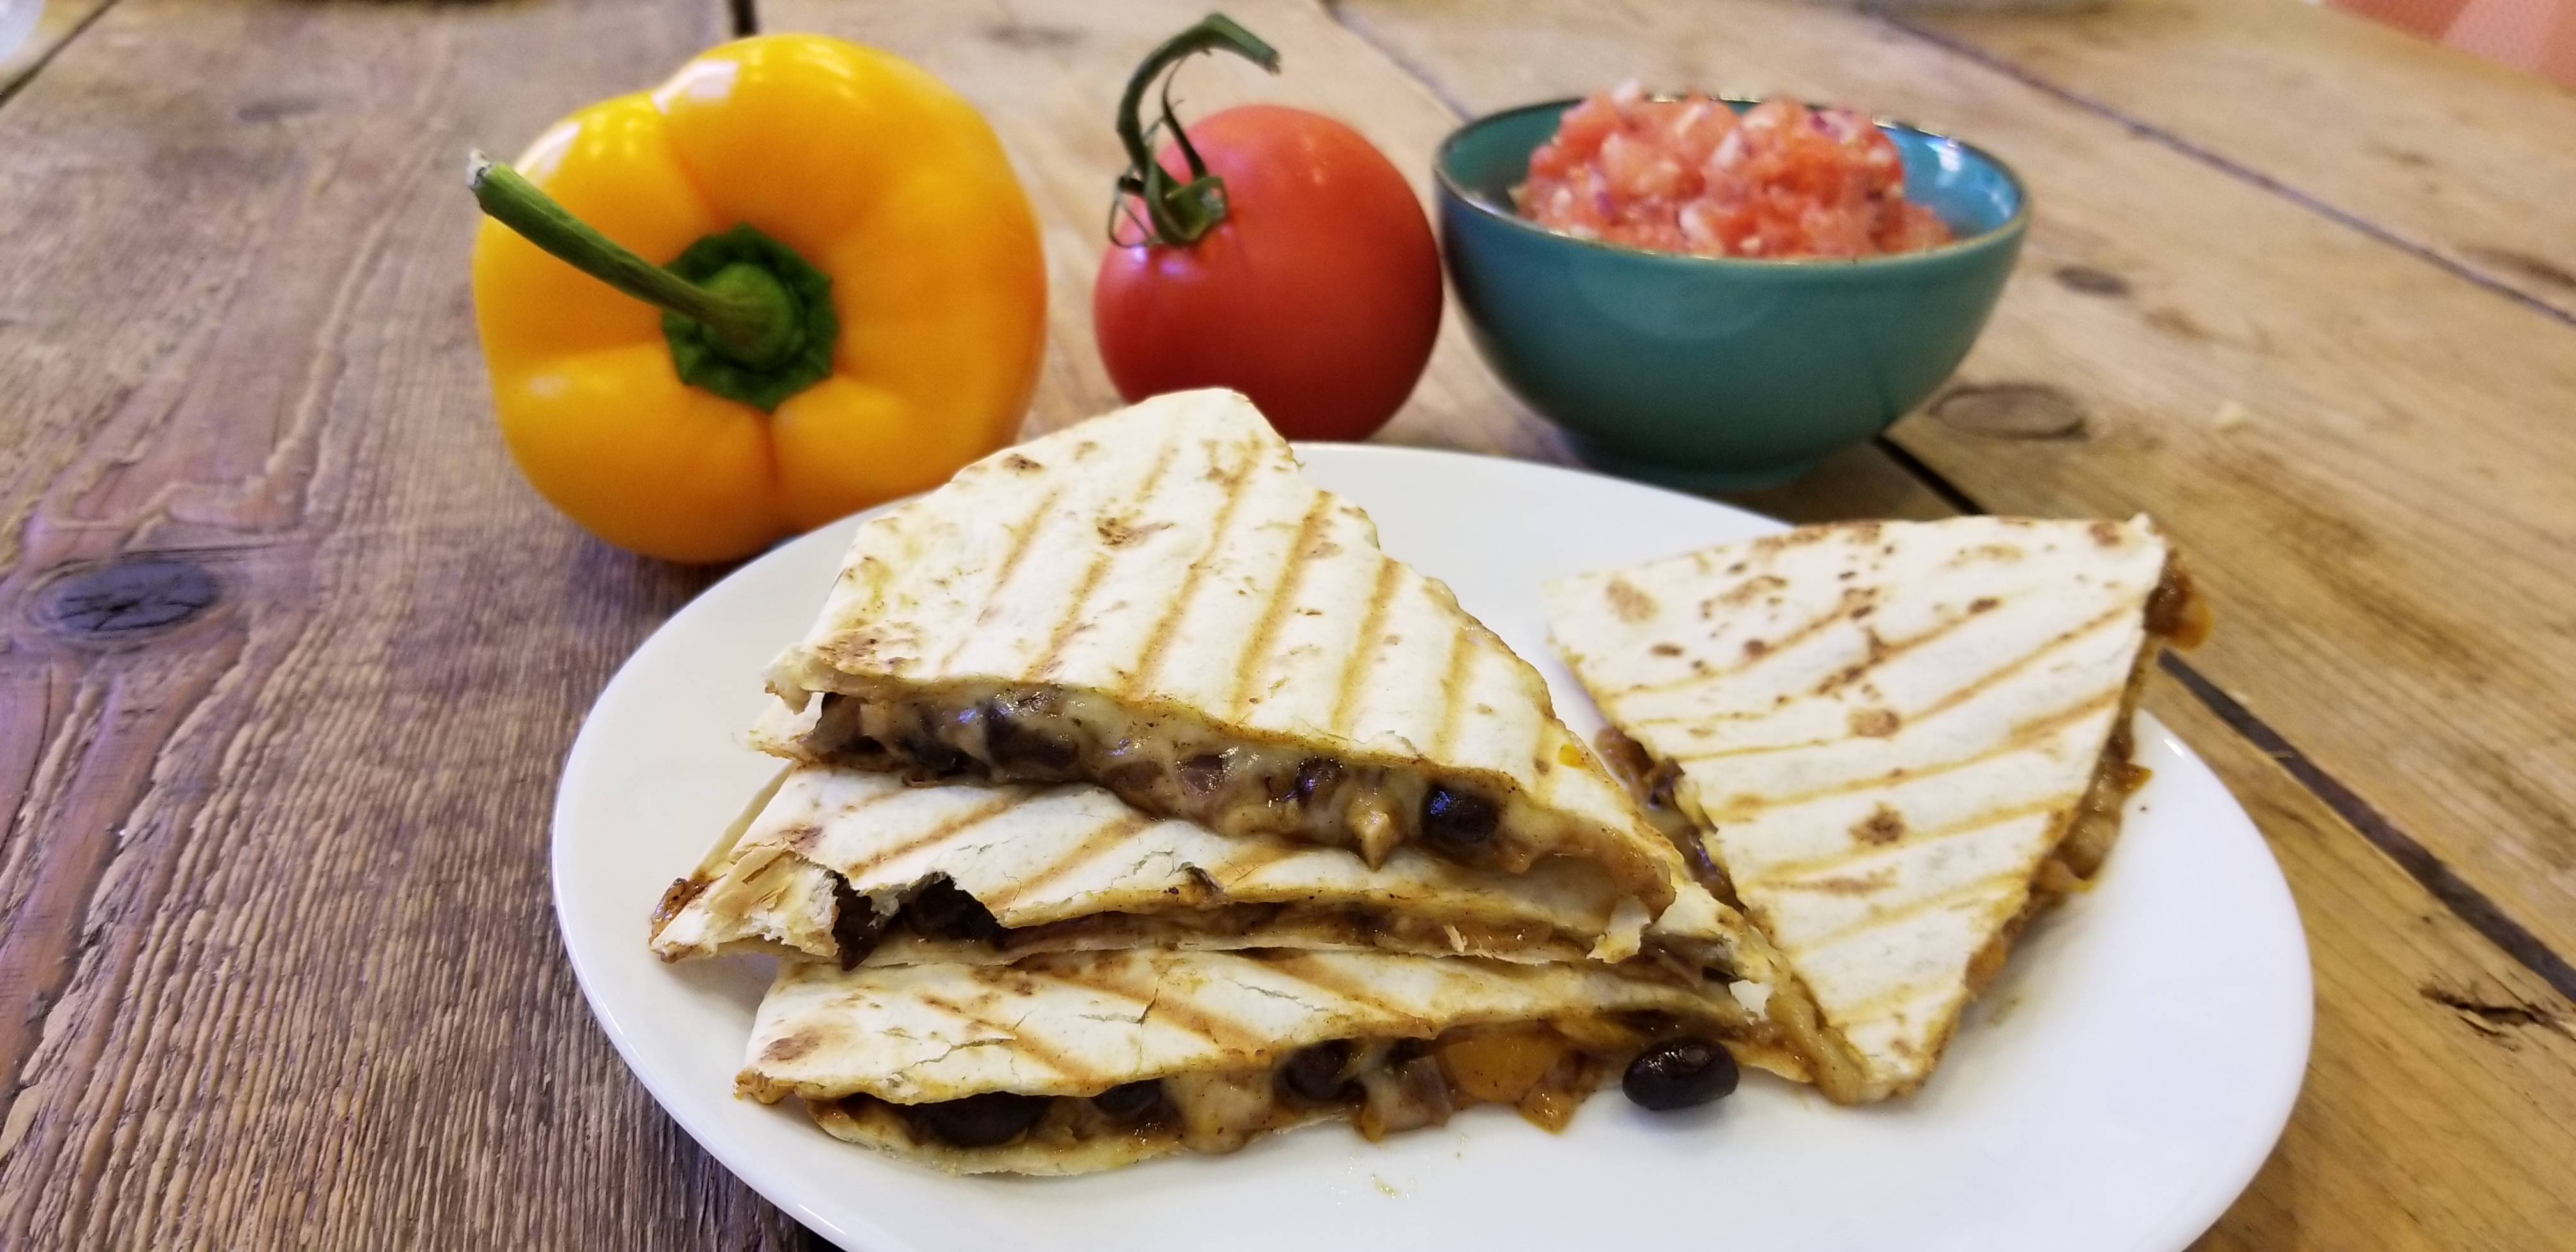 Recept vegetarische quesadillas met bonen